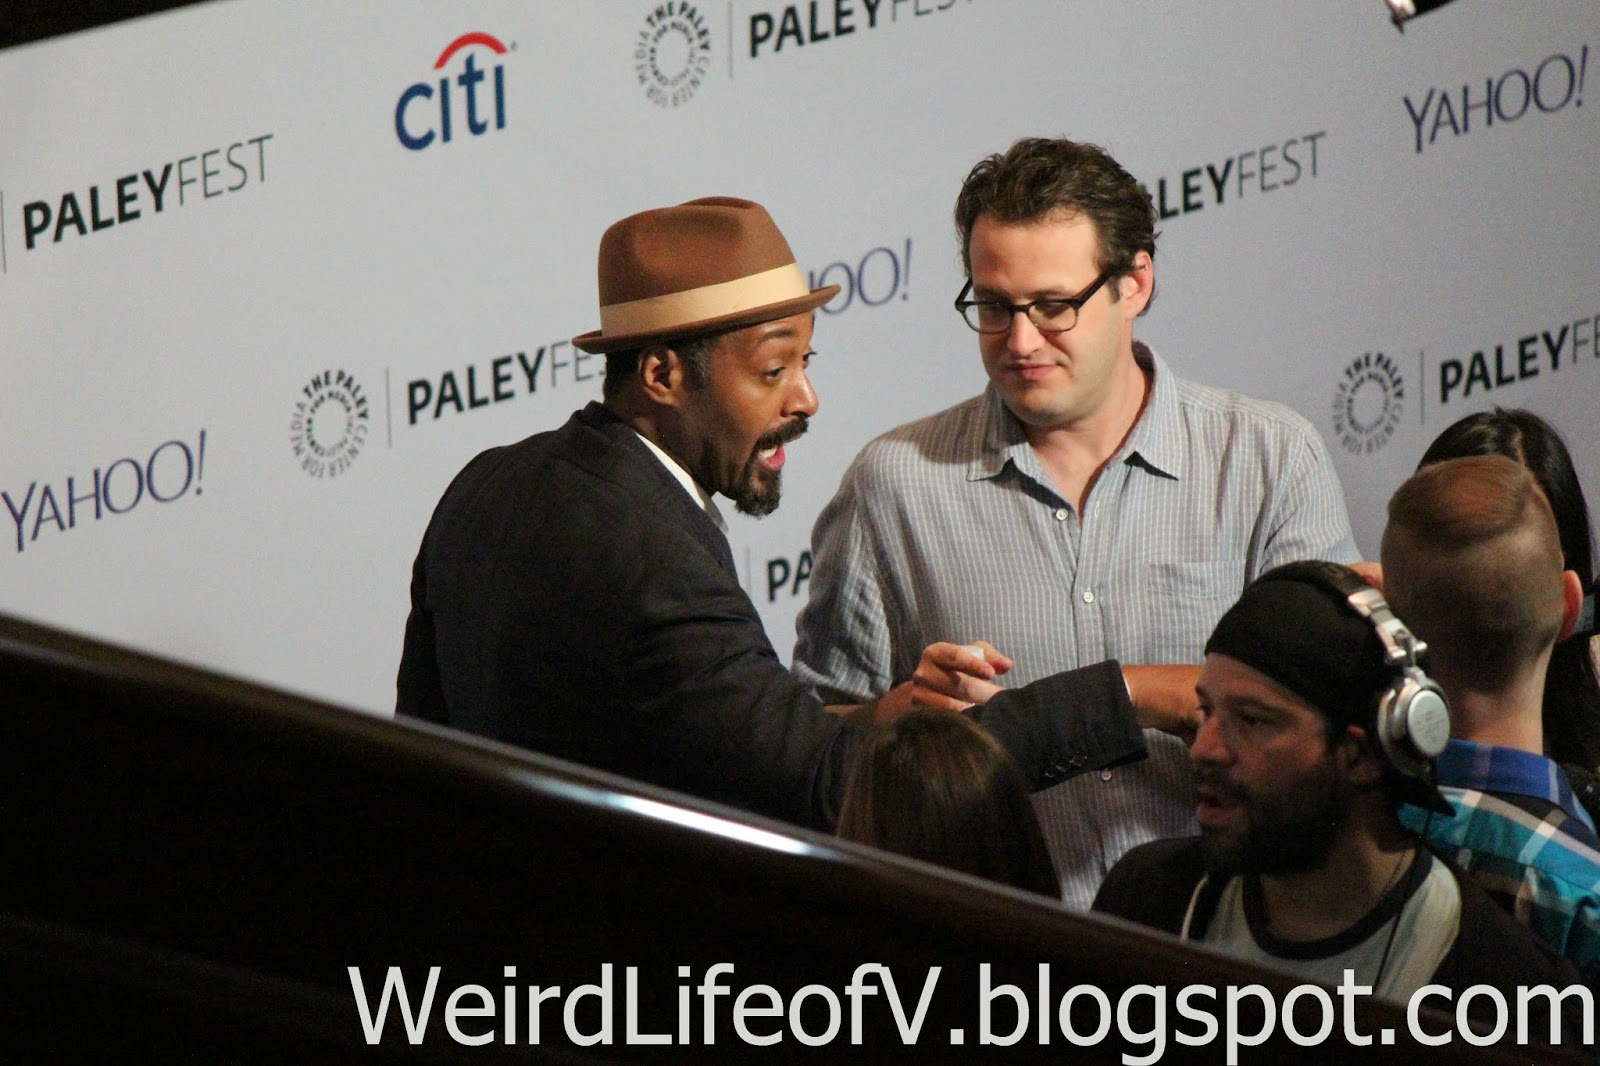 Jesse L. Martin and Andrew Kreisberg doing press